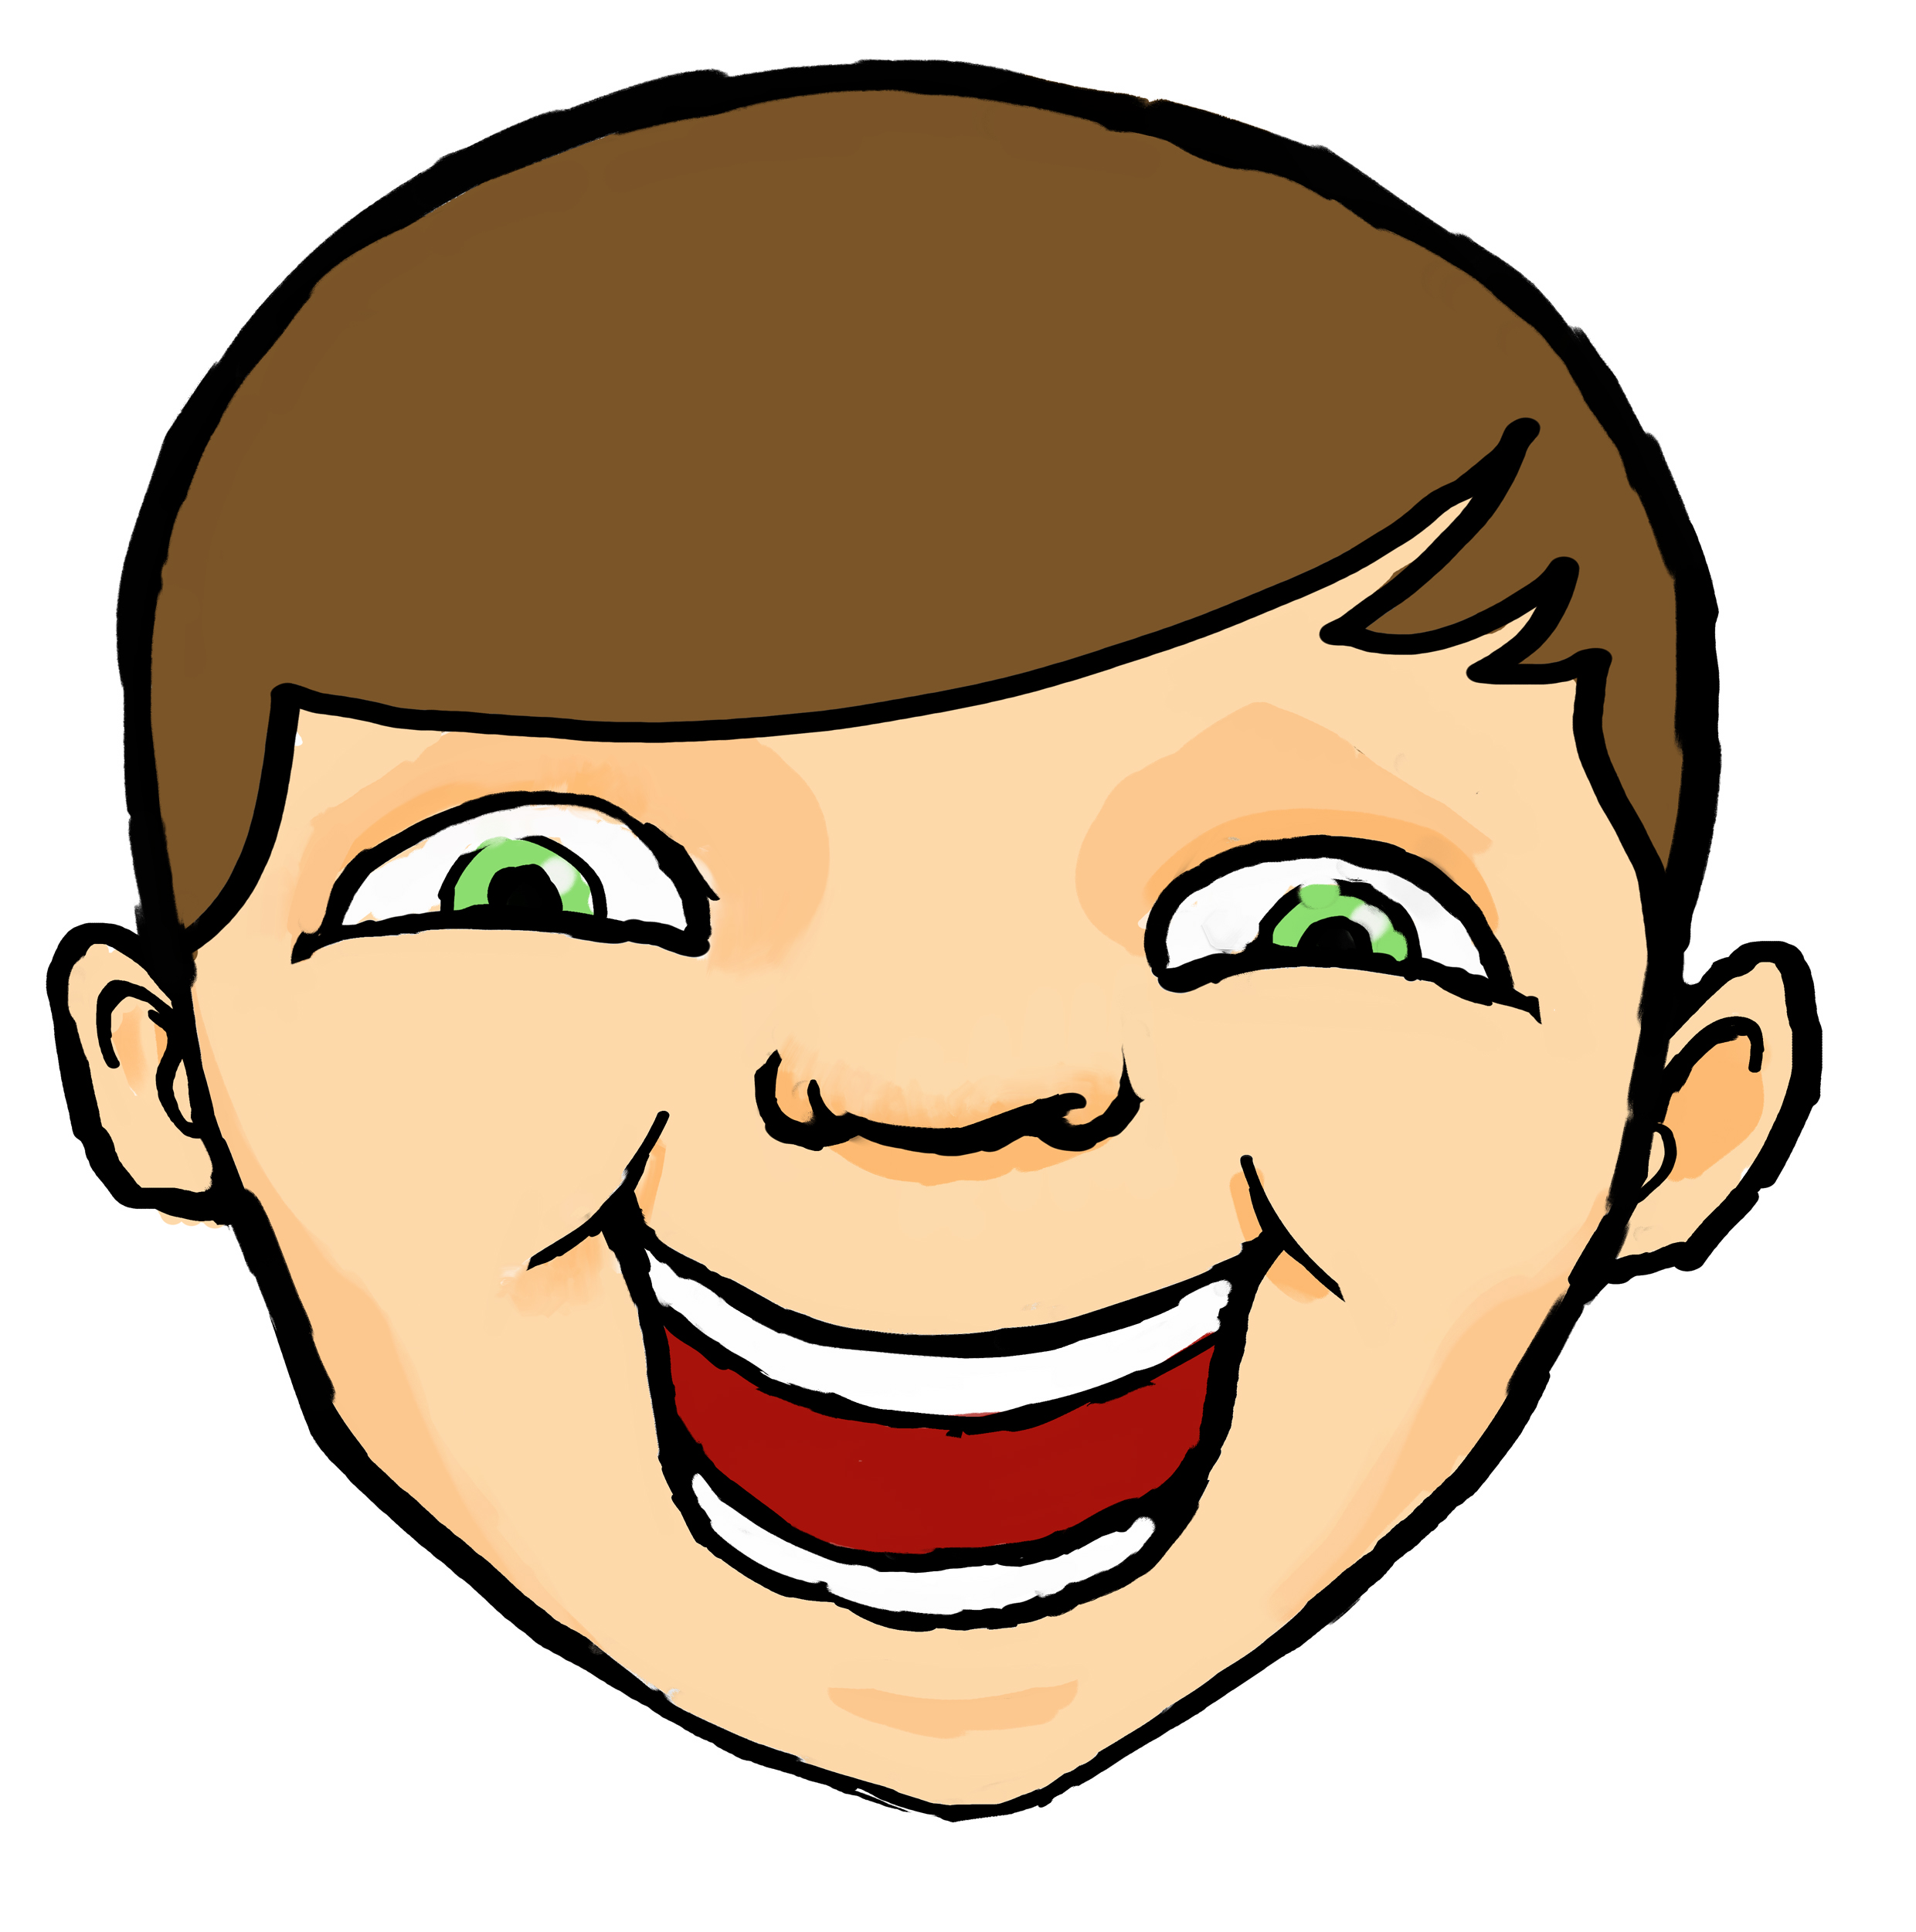 Children laughing clipart vector royalty free stock Laughing Clipart - Clipart Kid vector royalty free stock